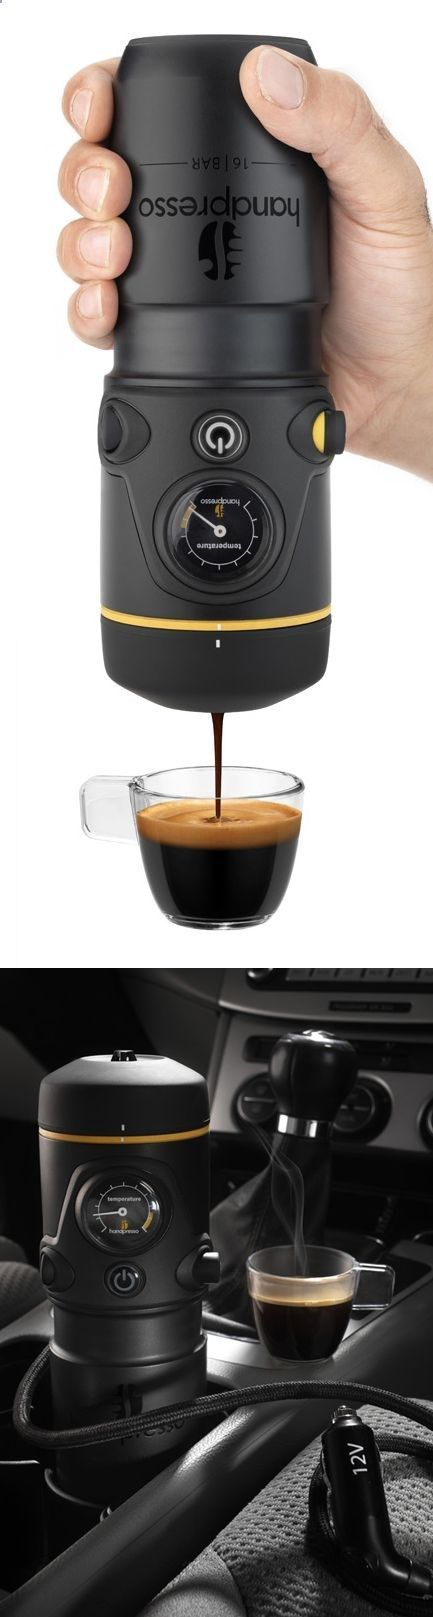 Coffee Maker Going Bad : 25+ best ideas about Camping coffee on Pinterest Camping 101, Make ahead camping meals and Do ...